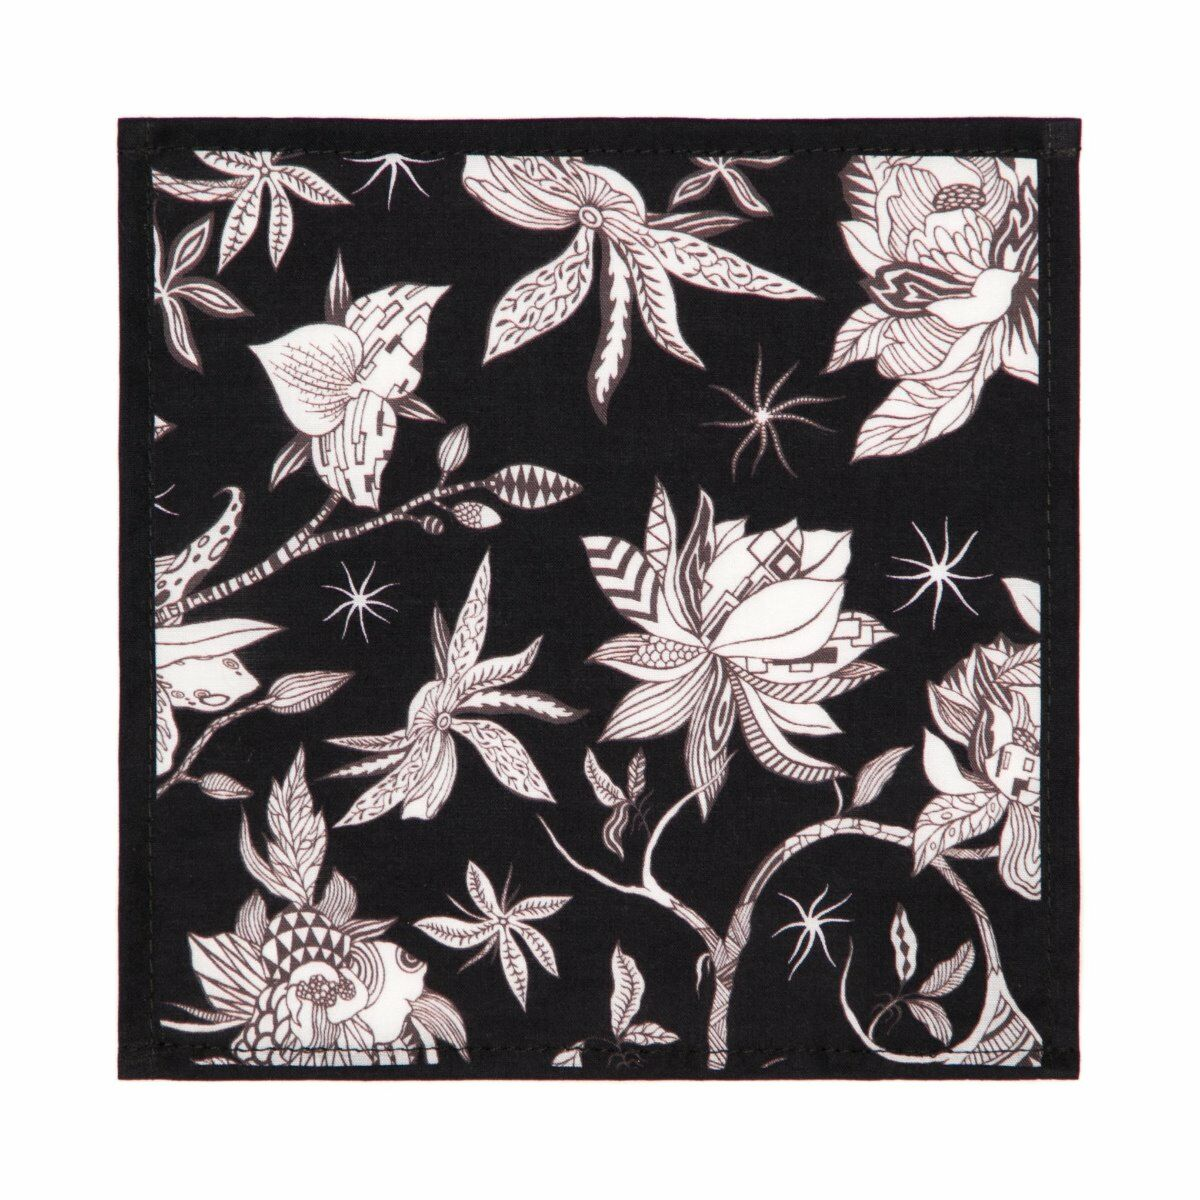 Orchid and Spike Cotton Cocktail Napkin Set - Black